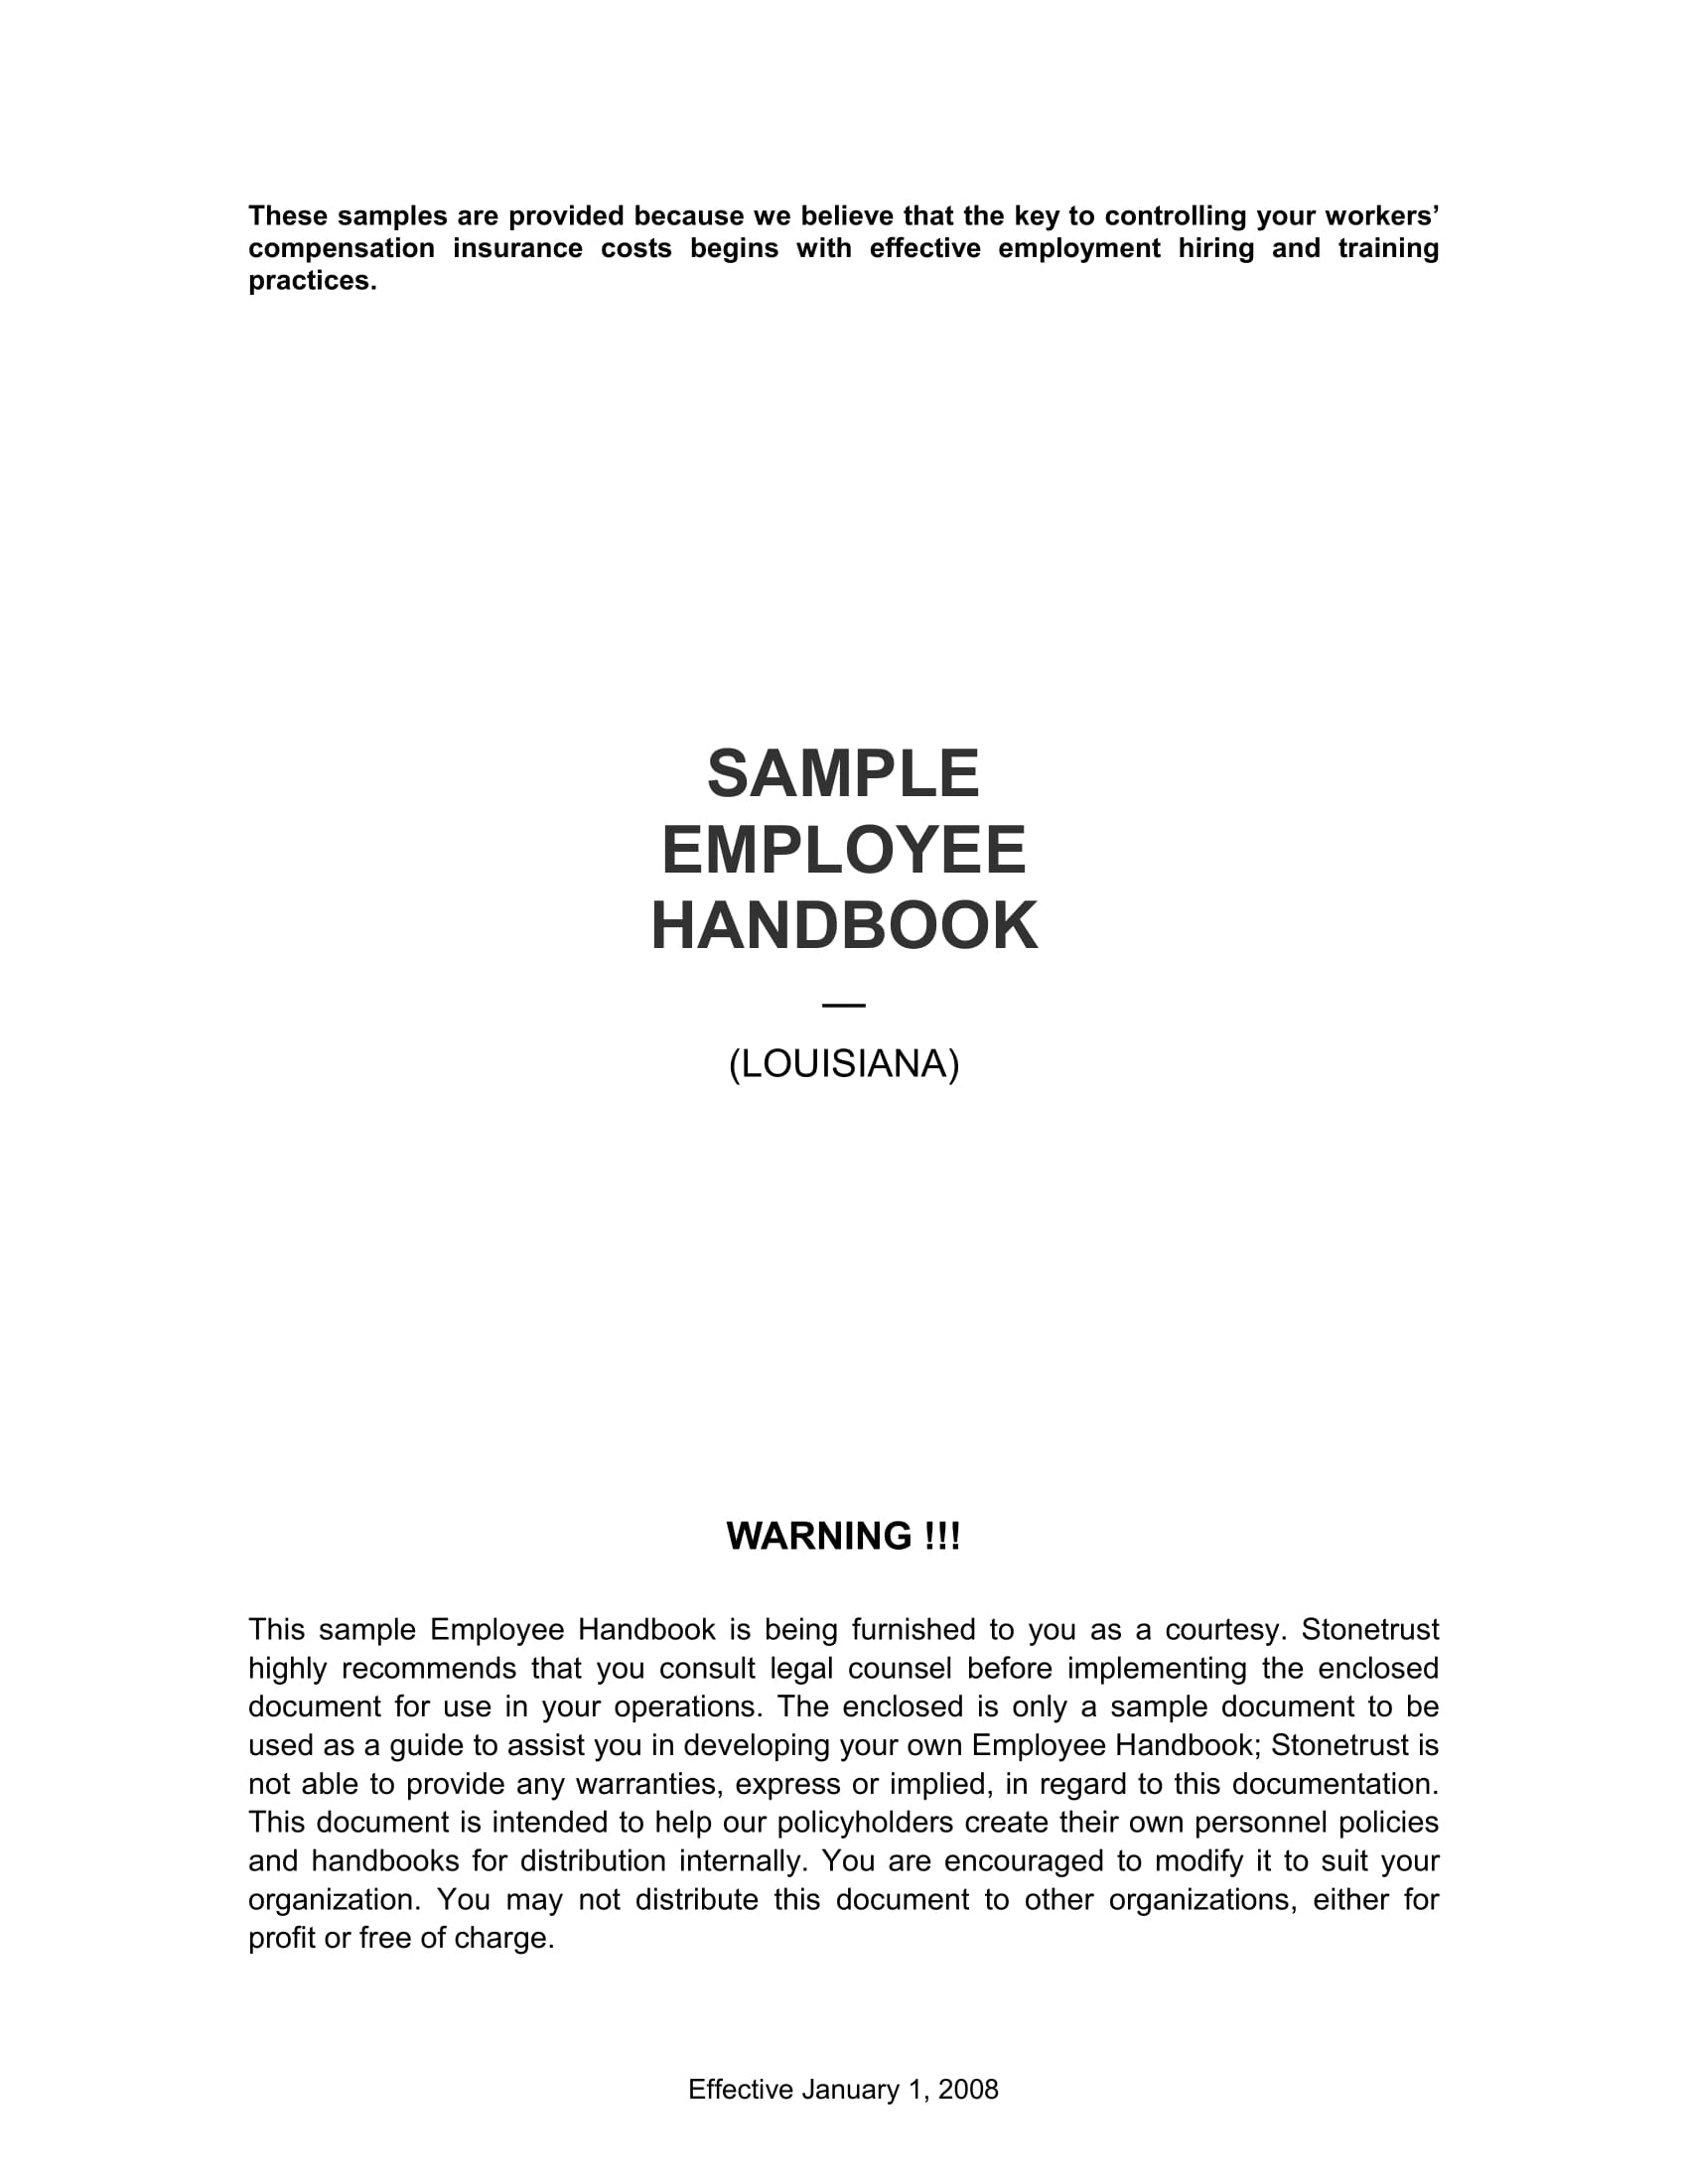 sample handbook for employee work rules